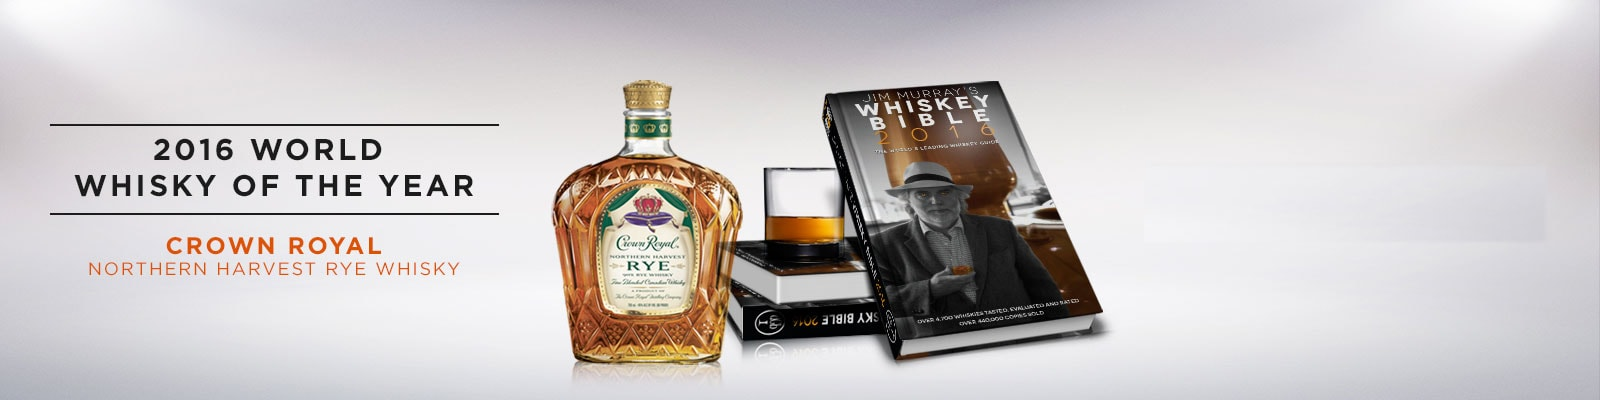 Whiskey Bible 2016